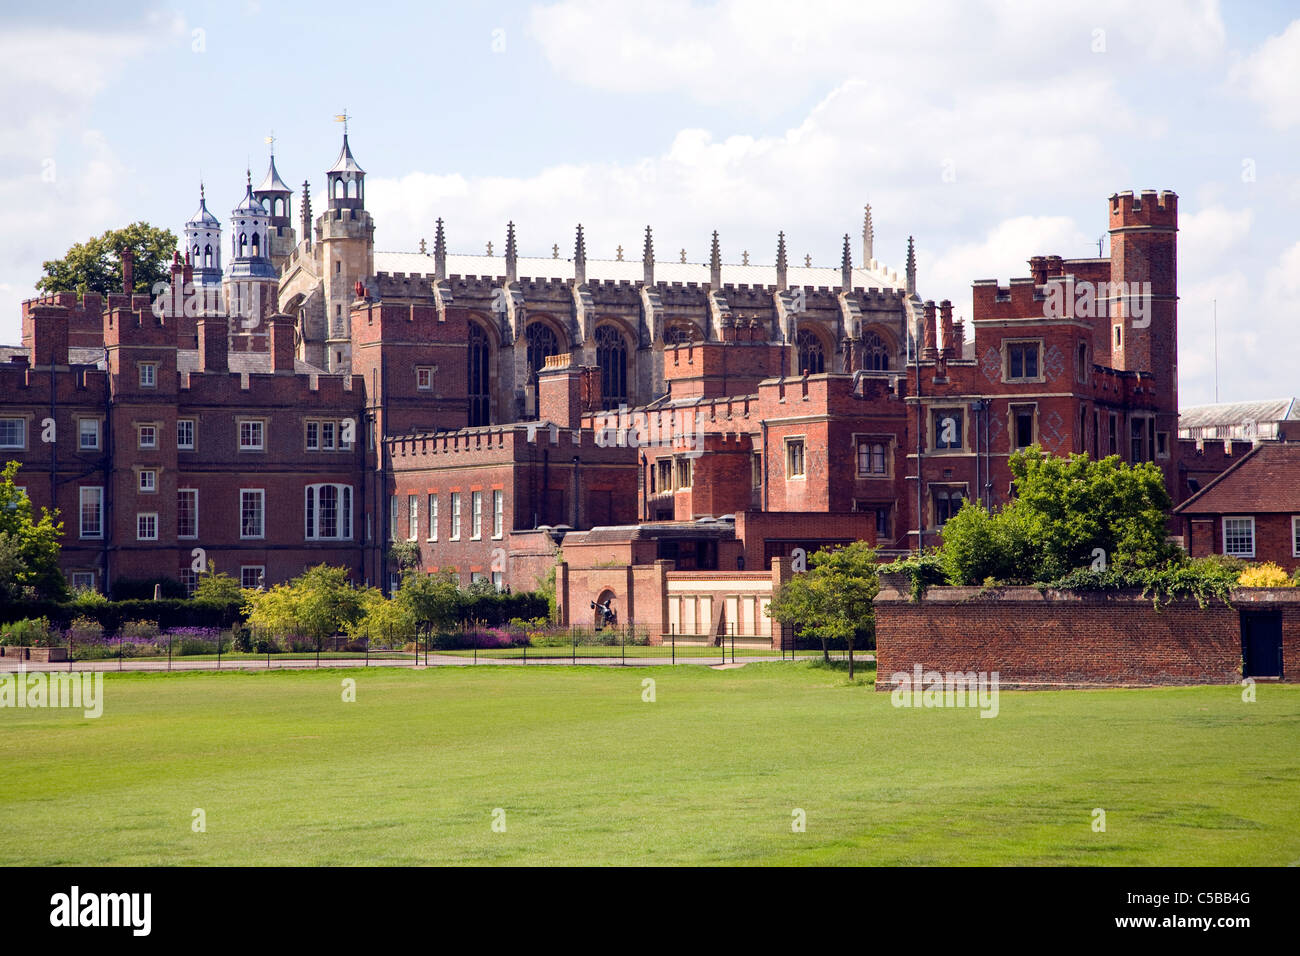 Buildings and playing fields of Eton College, Berkshire, England - Stock Image